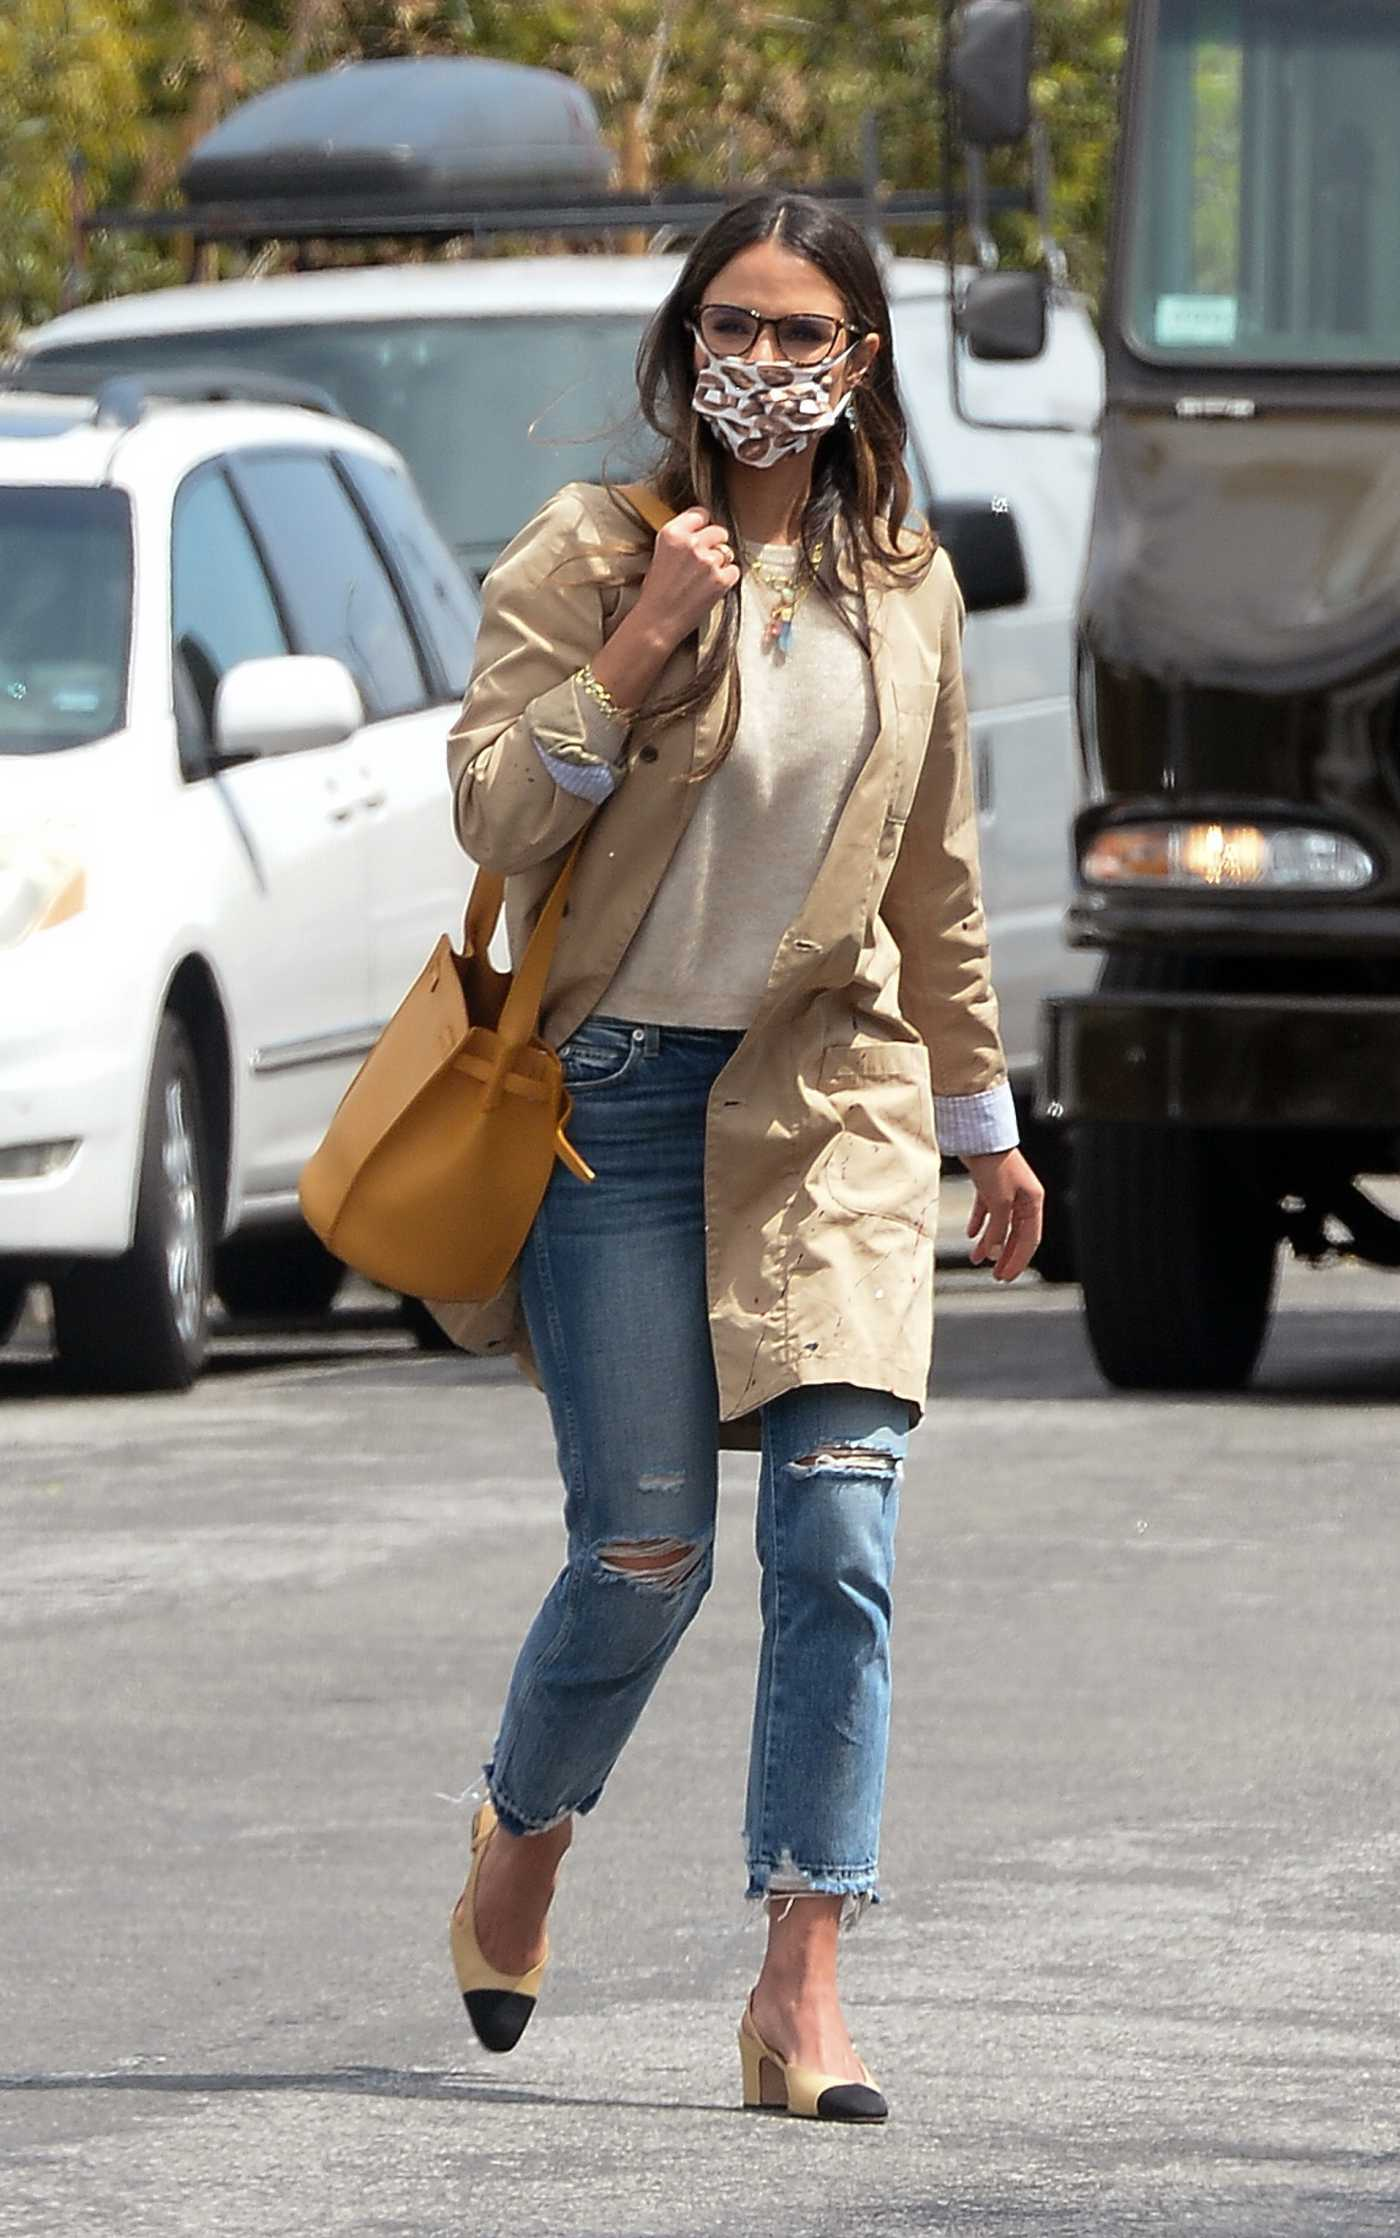 Jordana Brewster in a Beige Trench Coat Goes Shopping at Trader Joe's in Los Angeles 04/21/2021